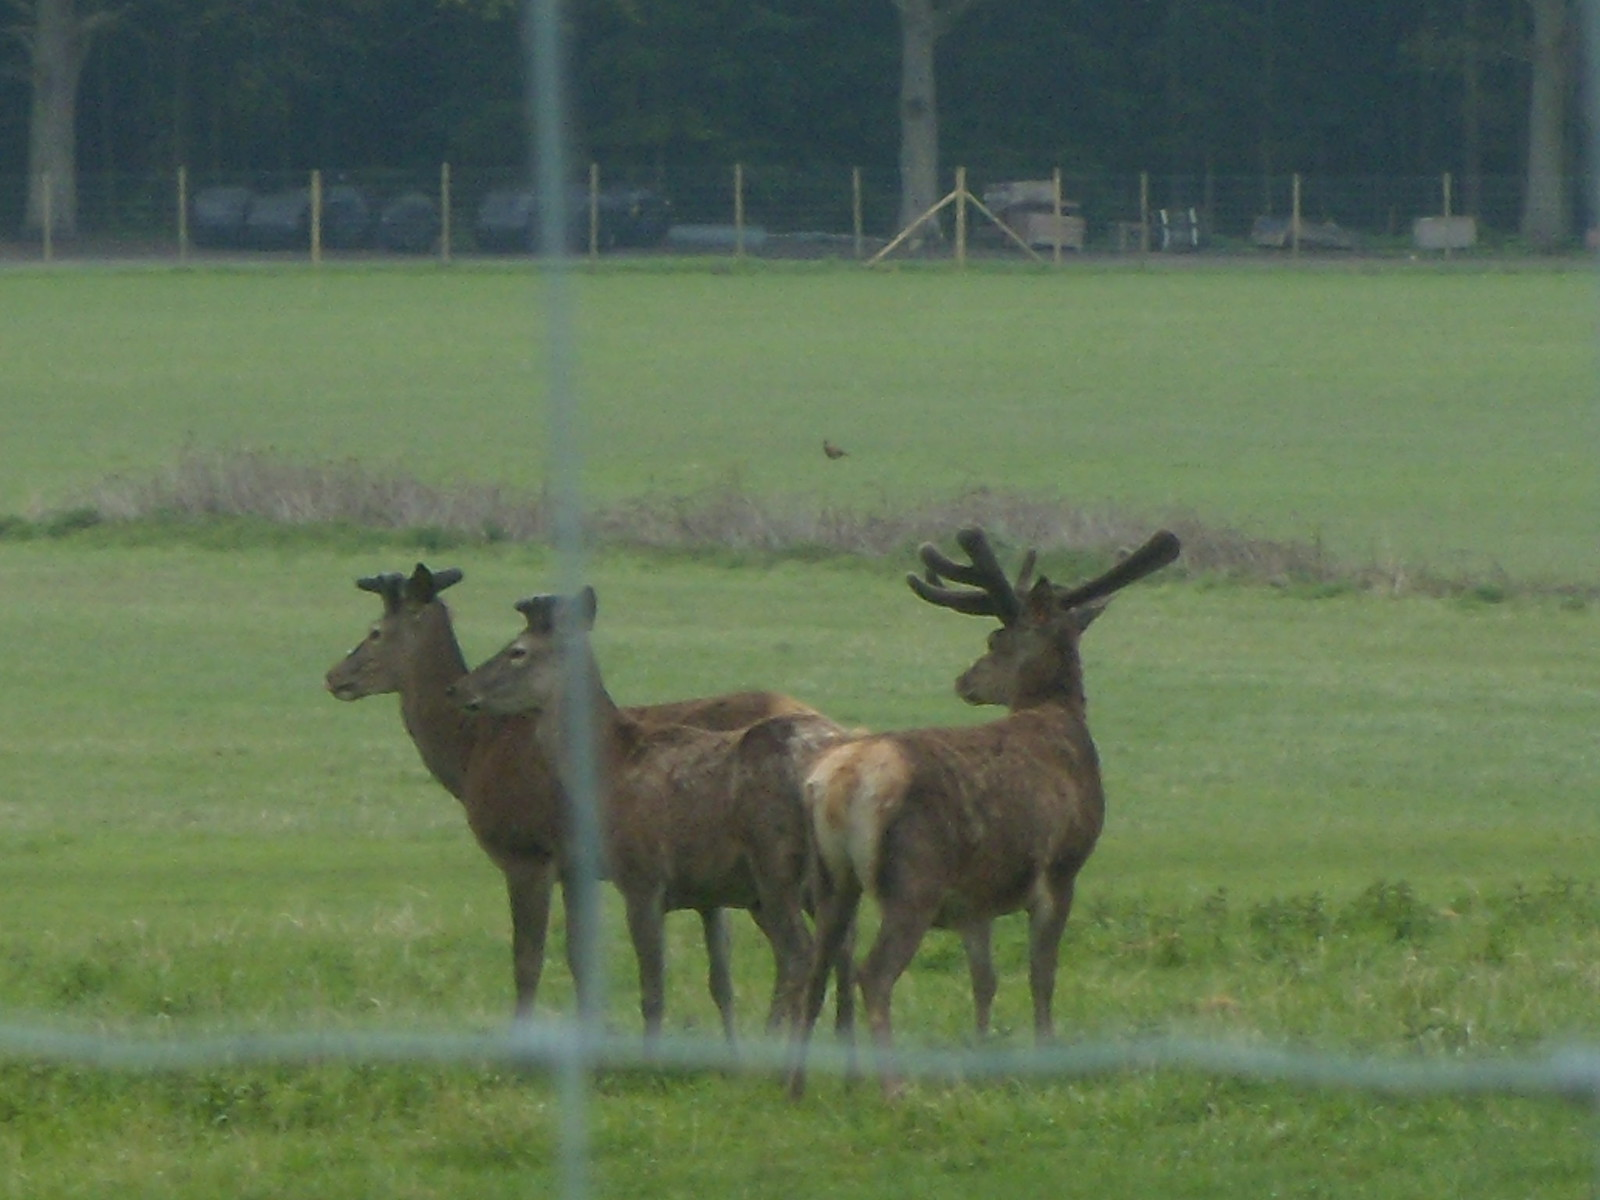 Deer Not quite wildlife photographer of the year. These are captive farmed deer.Yalding to Borough Green